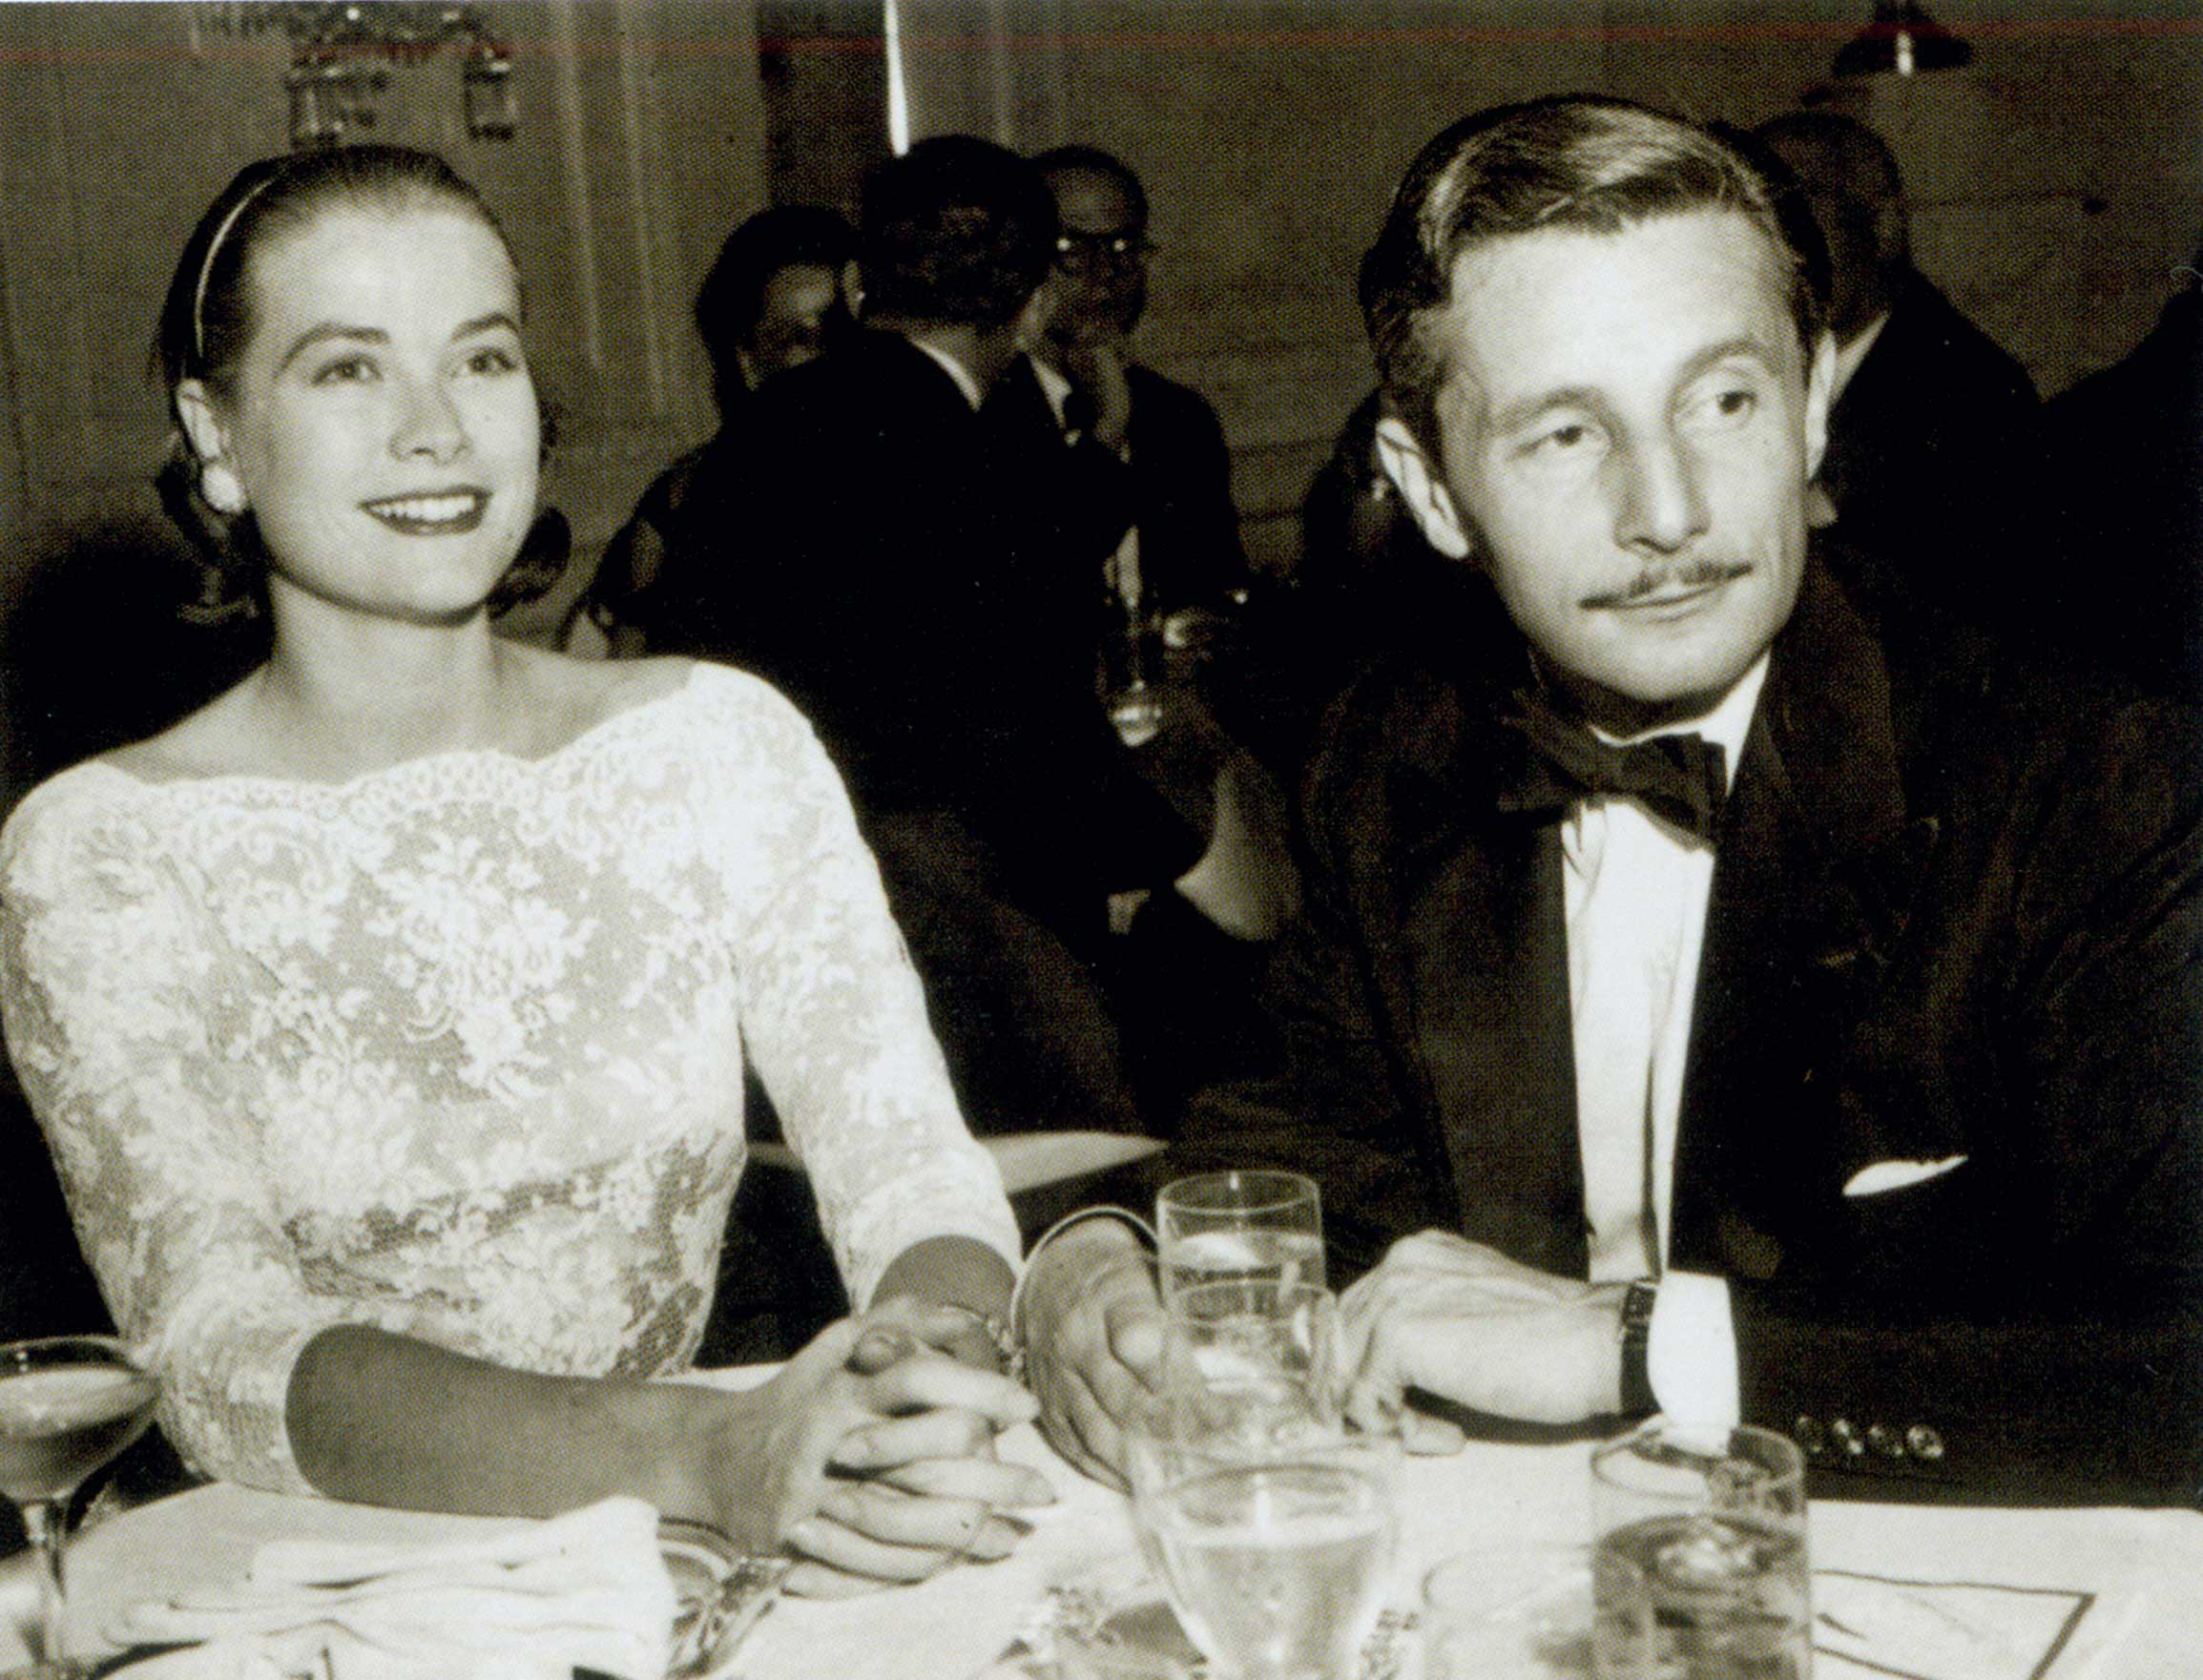 Grace Kelly in lace dress with Oleg Cassini at table